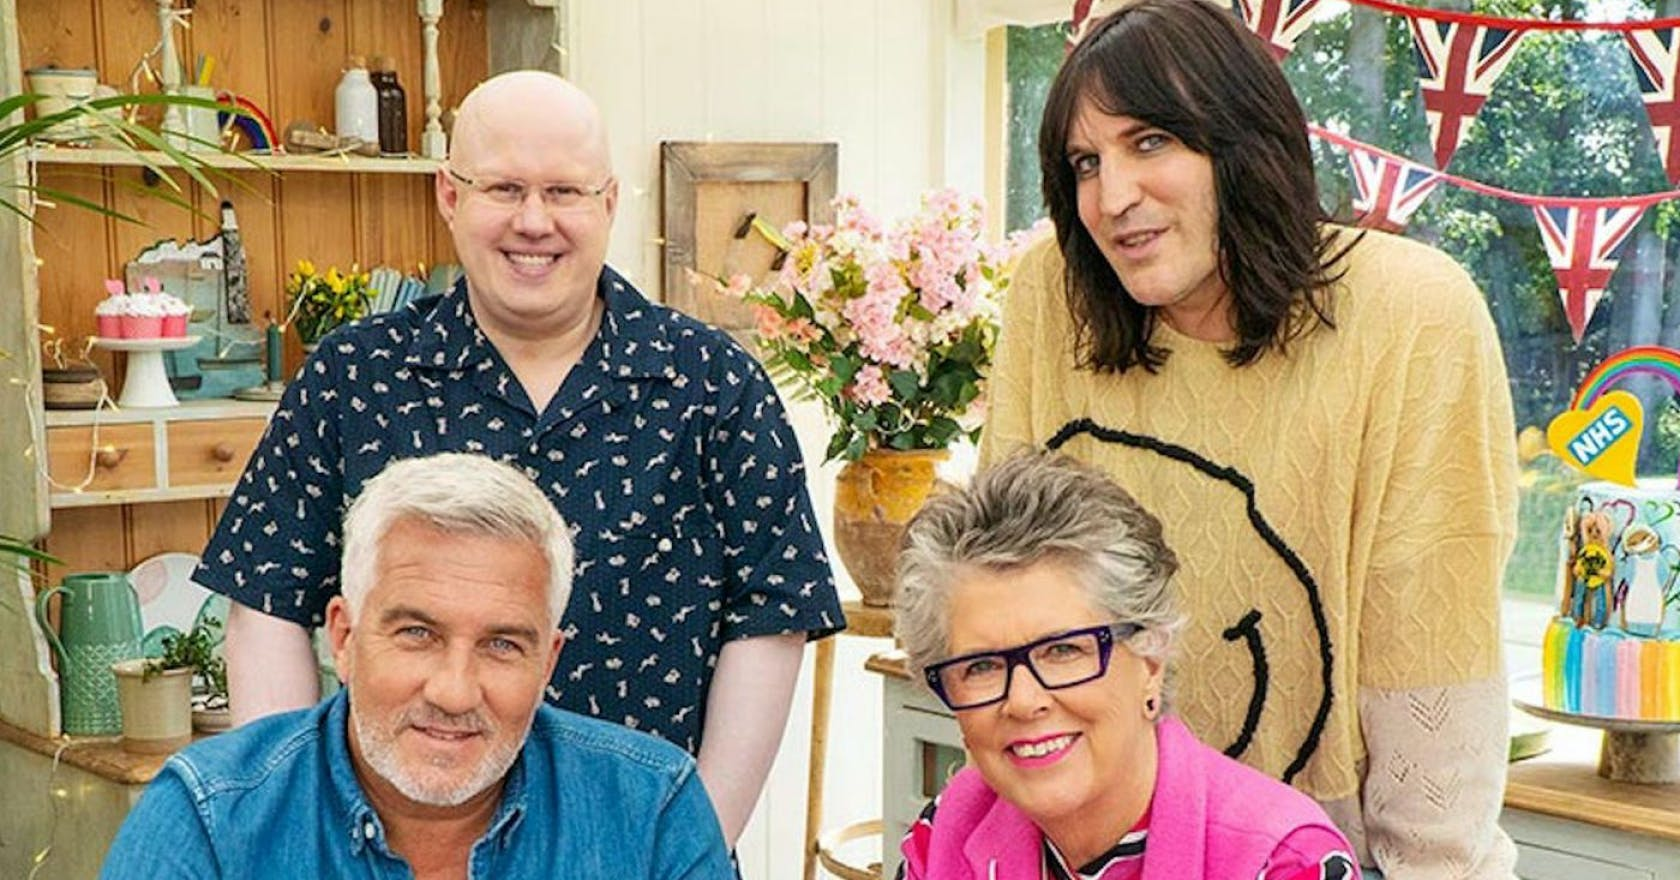 Clockwise from top left, Matt Lucas; Noel Fielding; Prue Leith; and Paul Hollywood of Great British Bake Off.